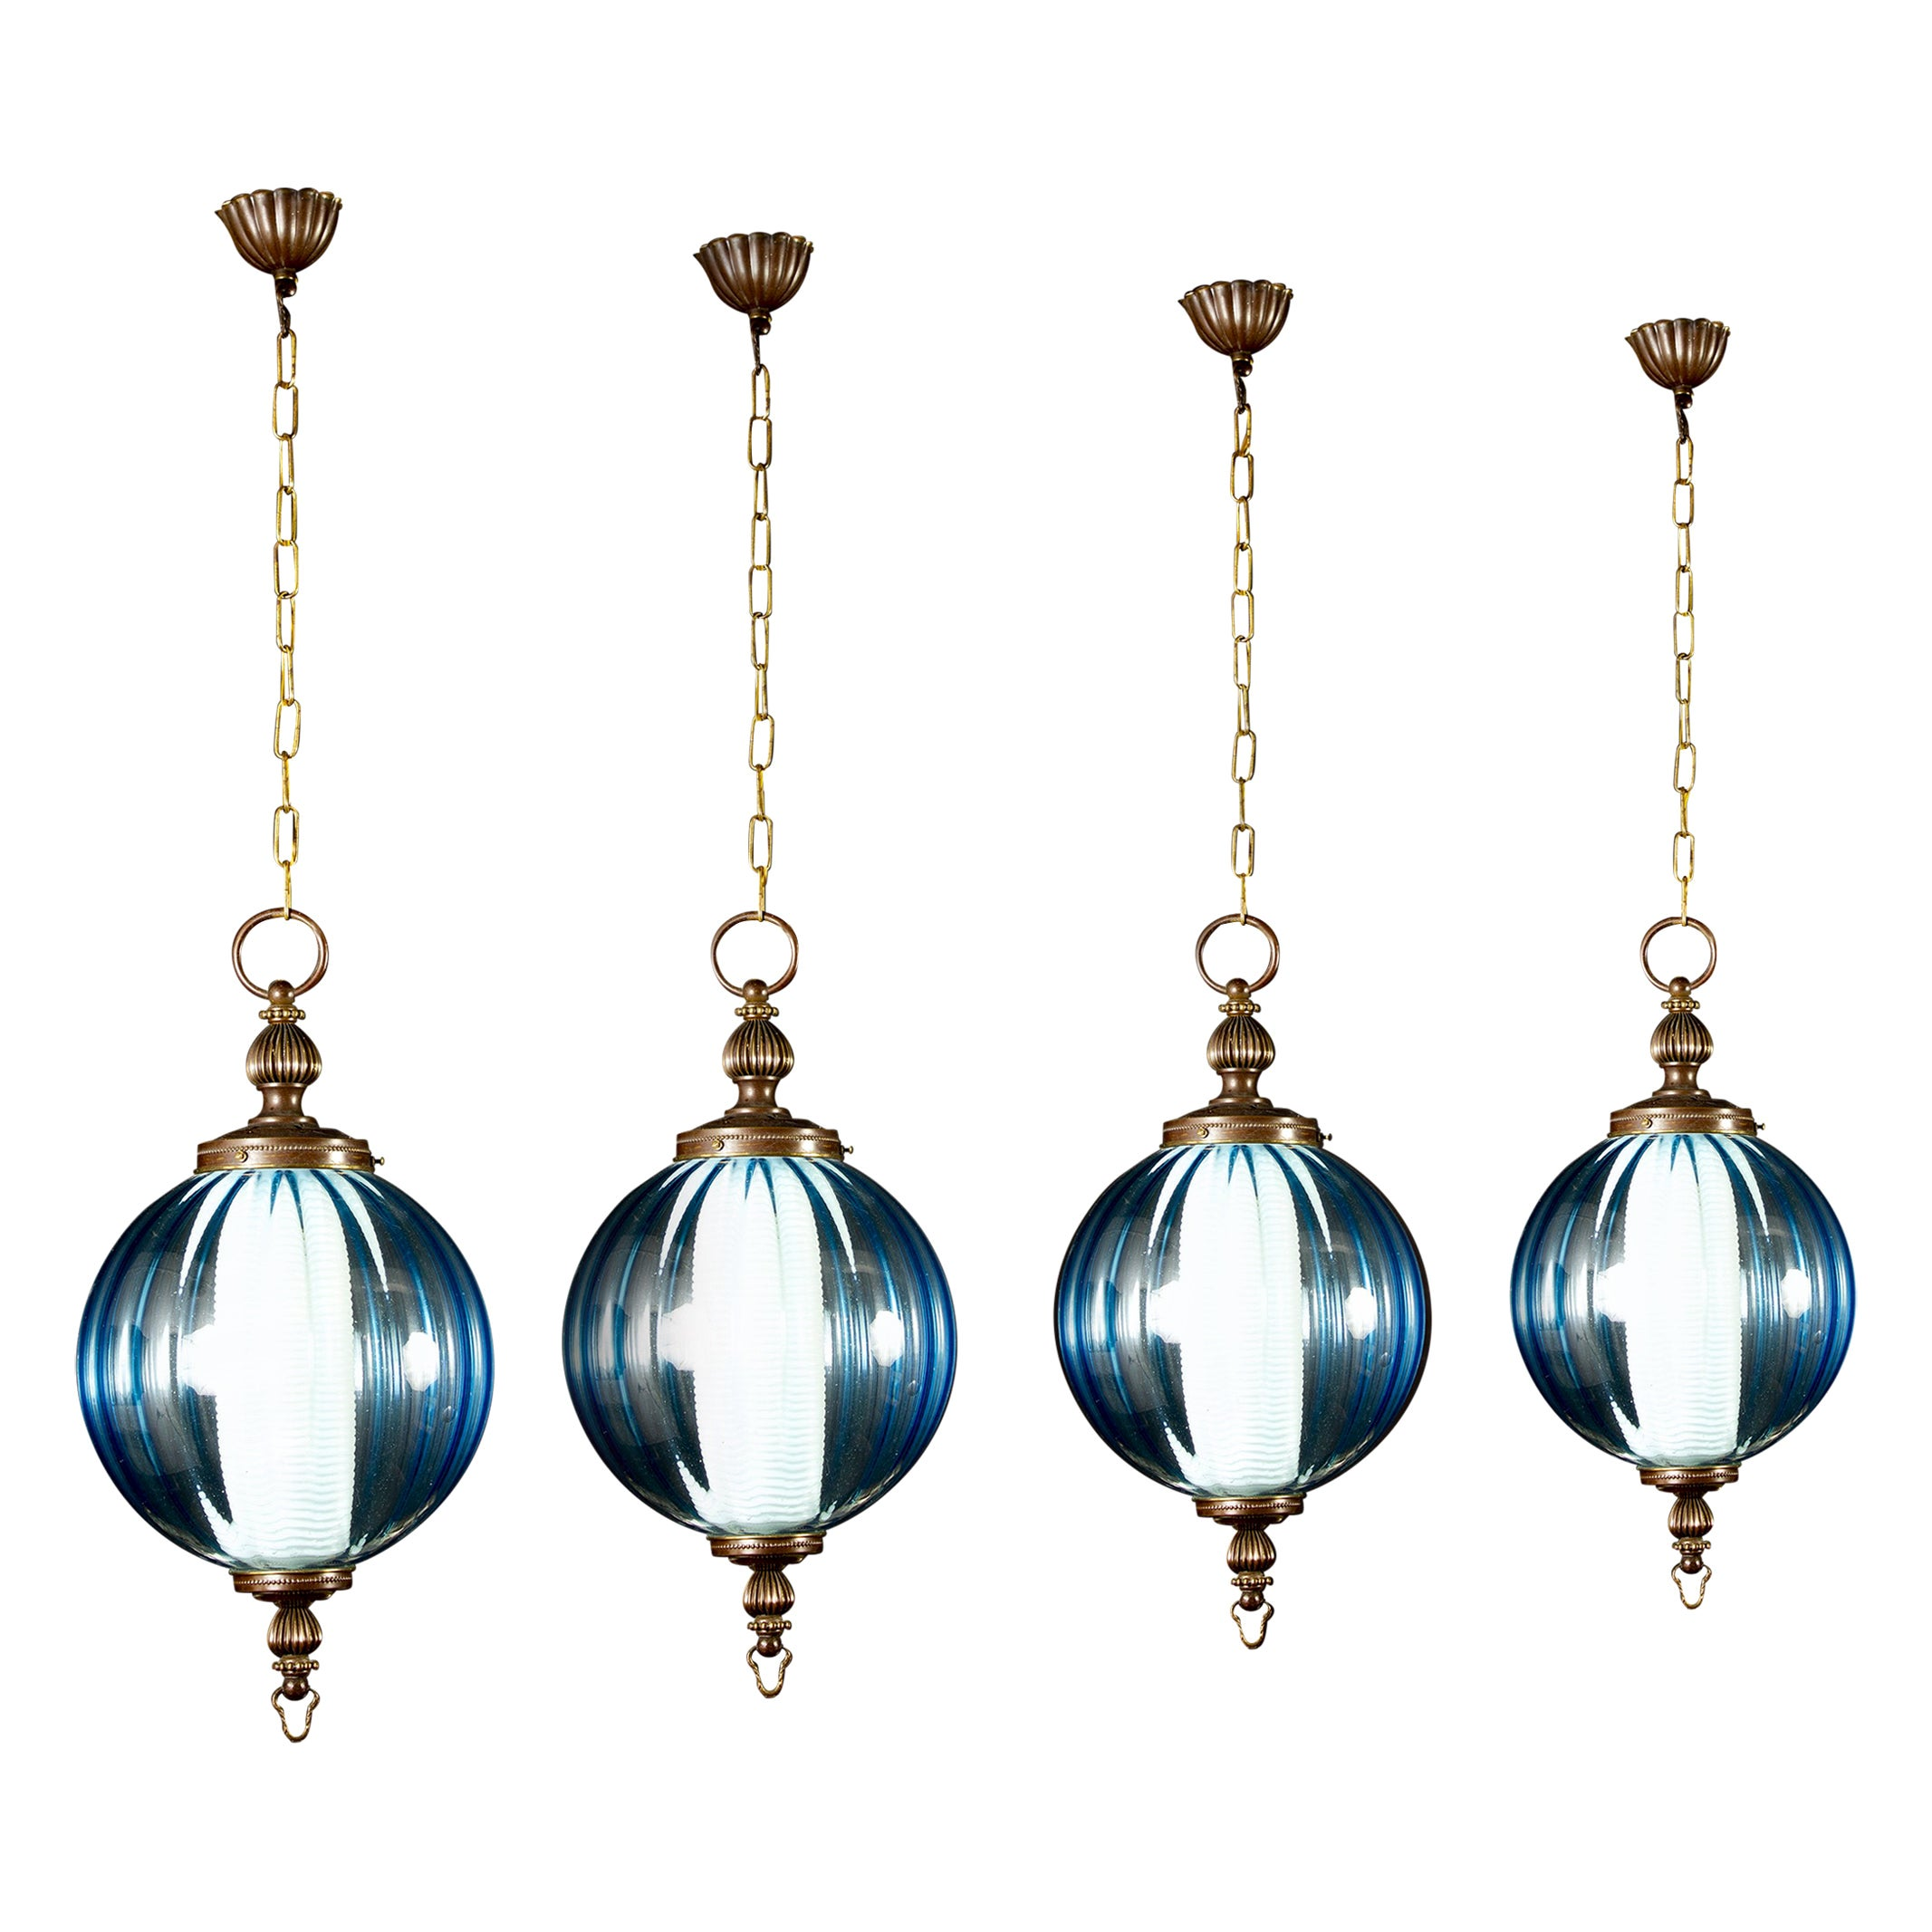 Midcentury Aquamarine Murano Glass Atmosphere Lanterns or Pendants, Italy, 1950